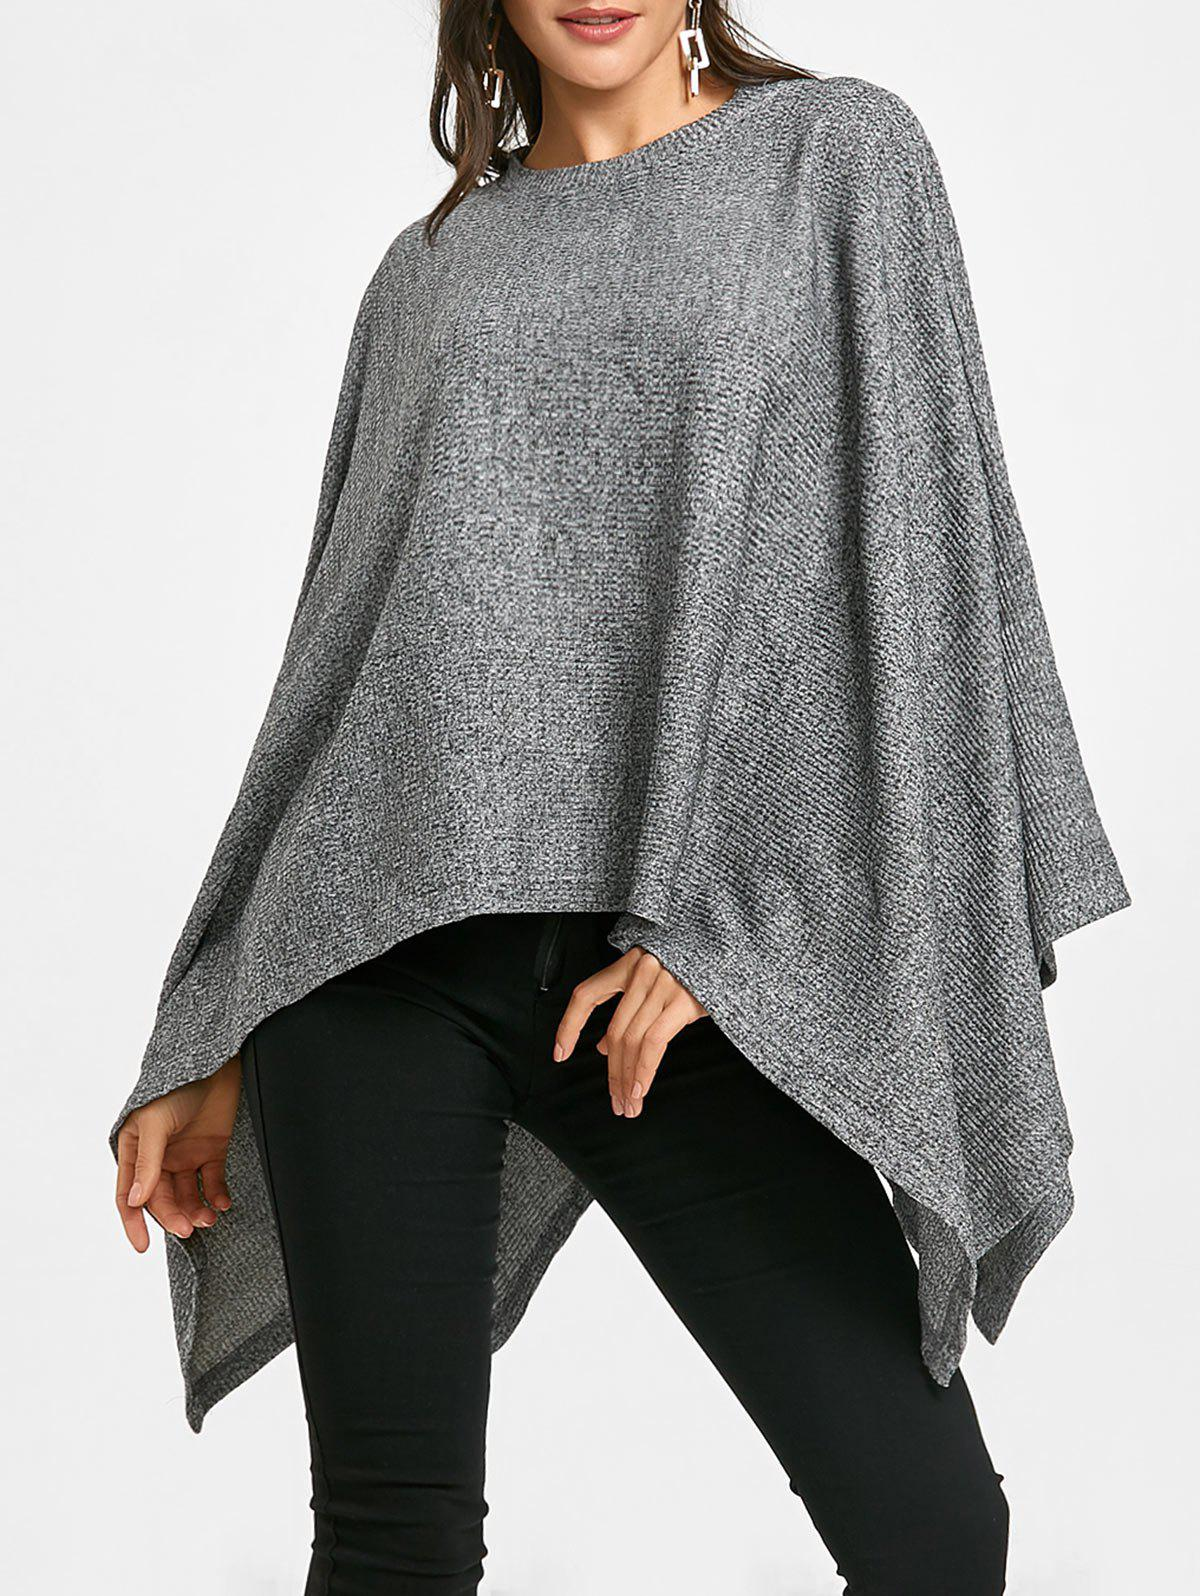 Batwing Sleeve Oversized Poncho Sweater - GRAY ONE SIZE